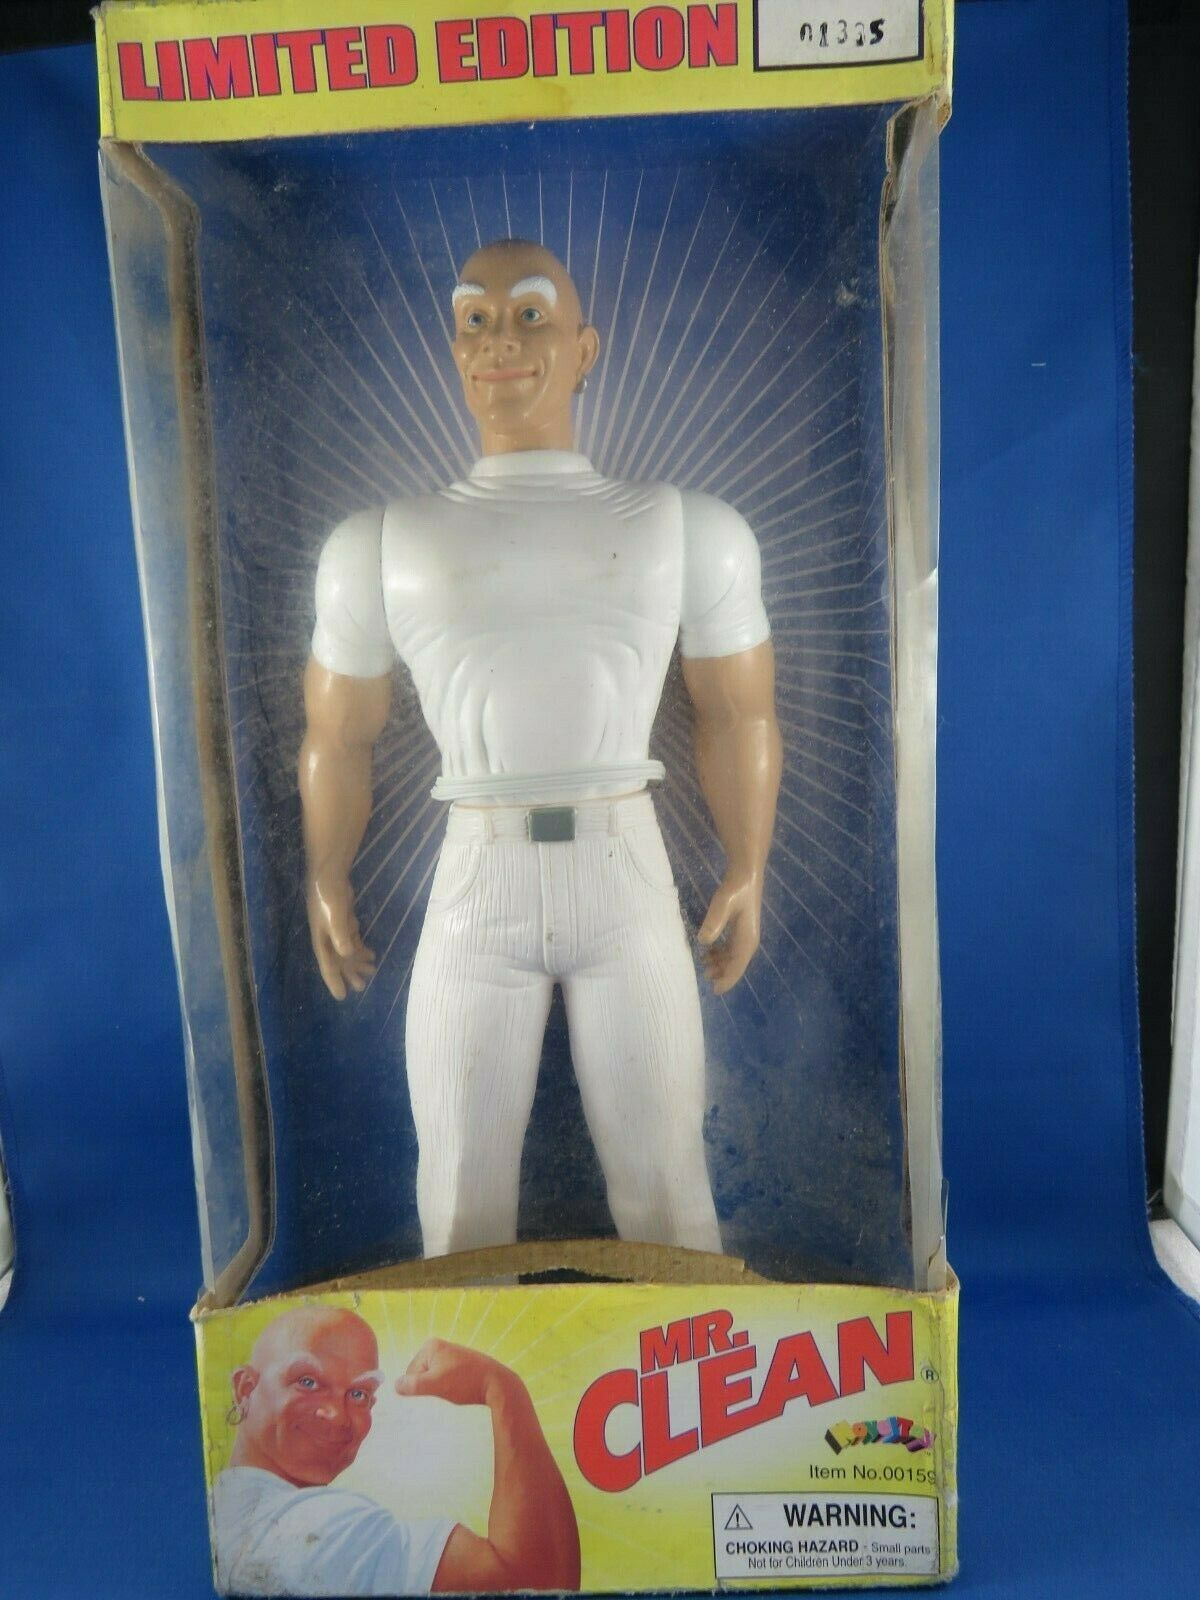 Limited Edition Mr.Clean Action Figure  01335